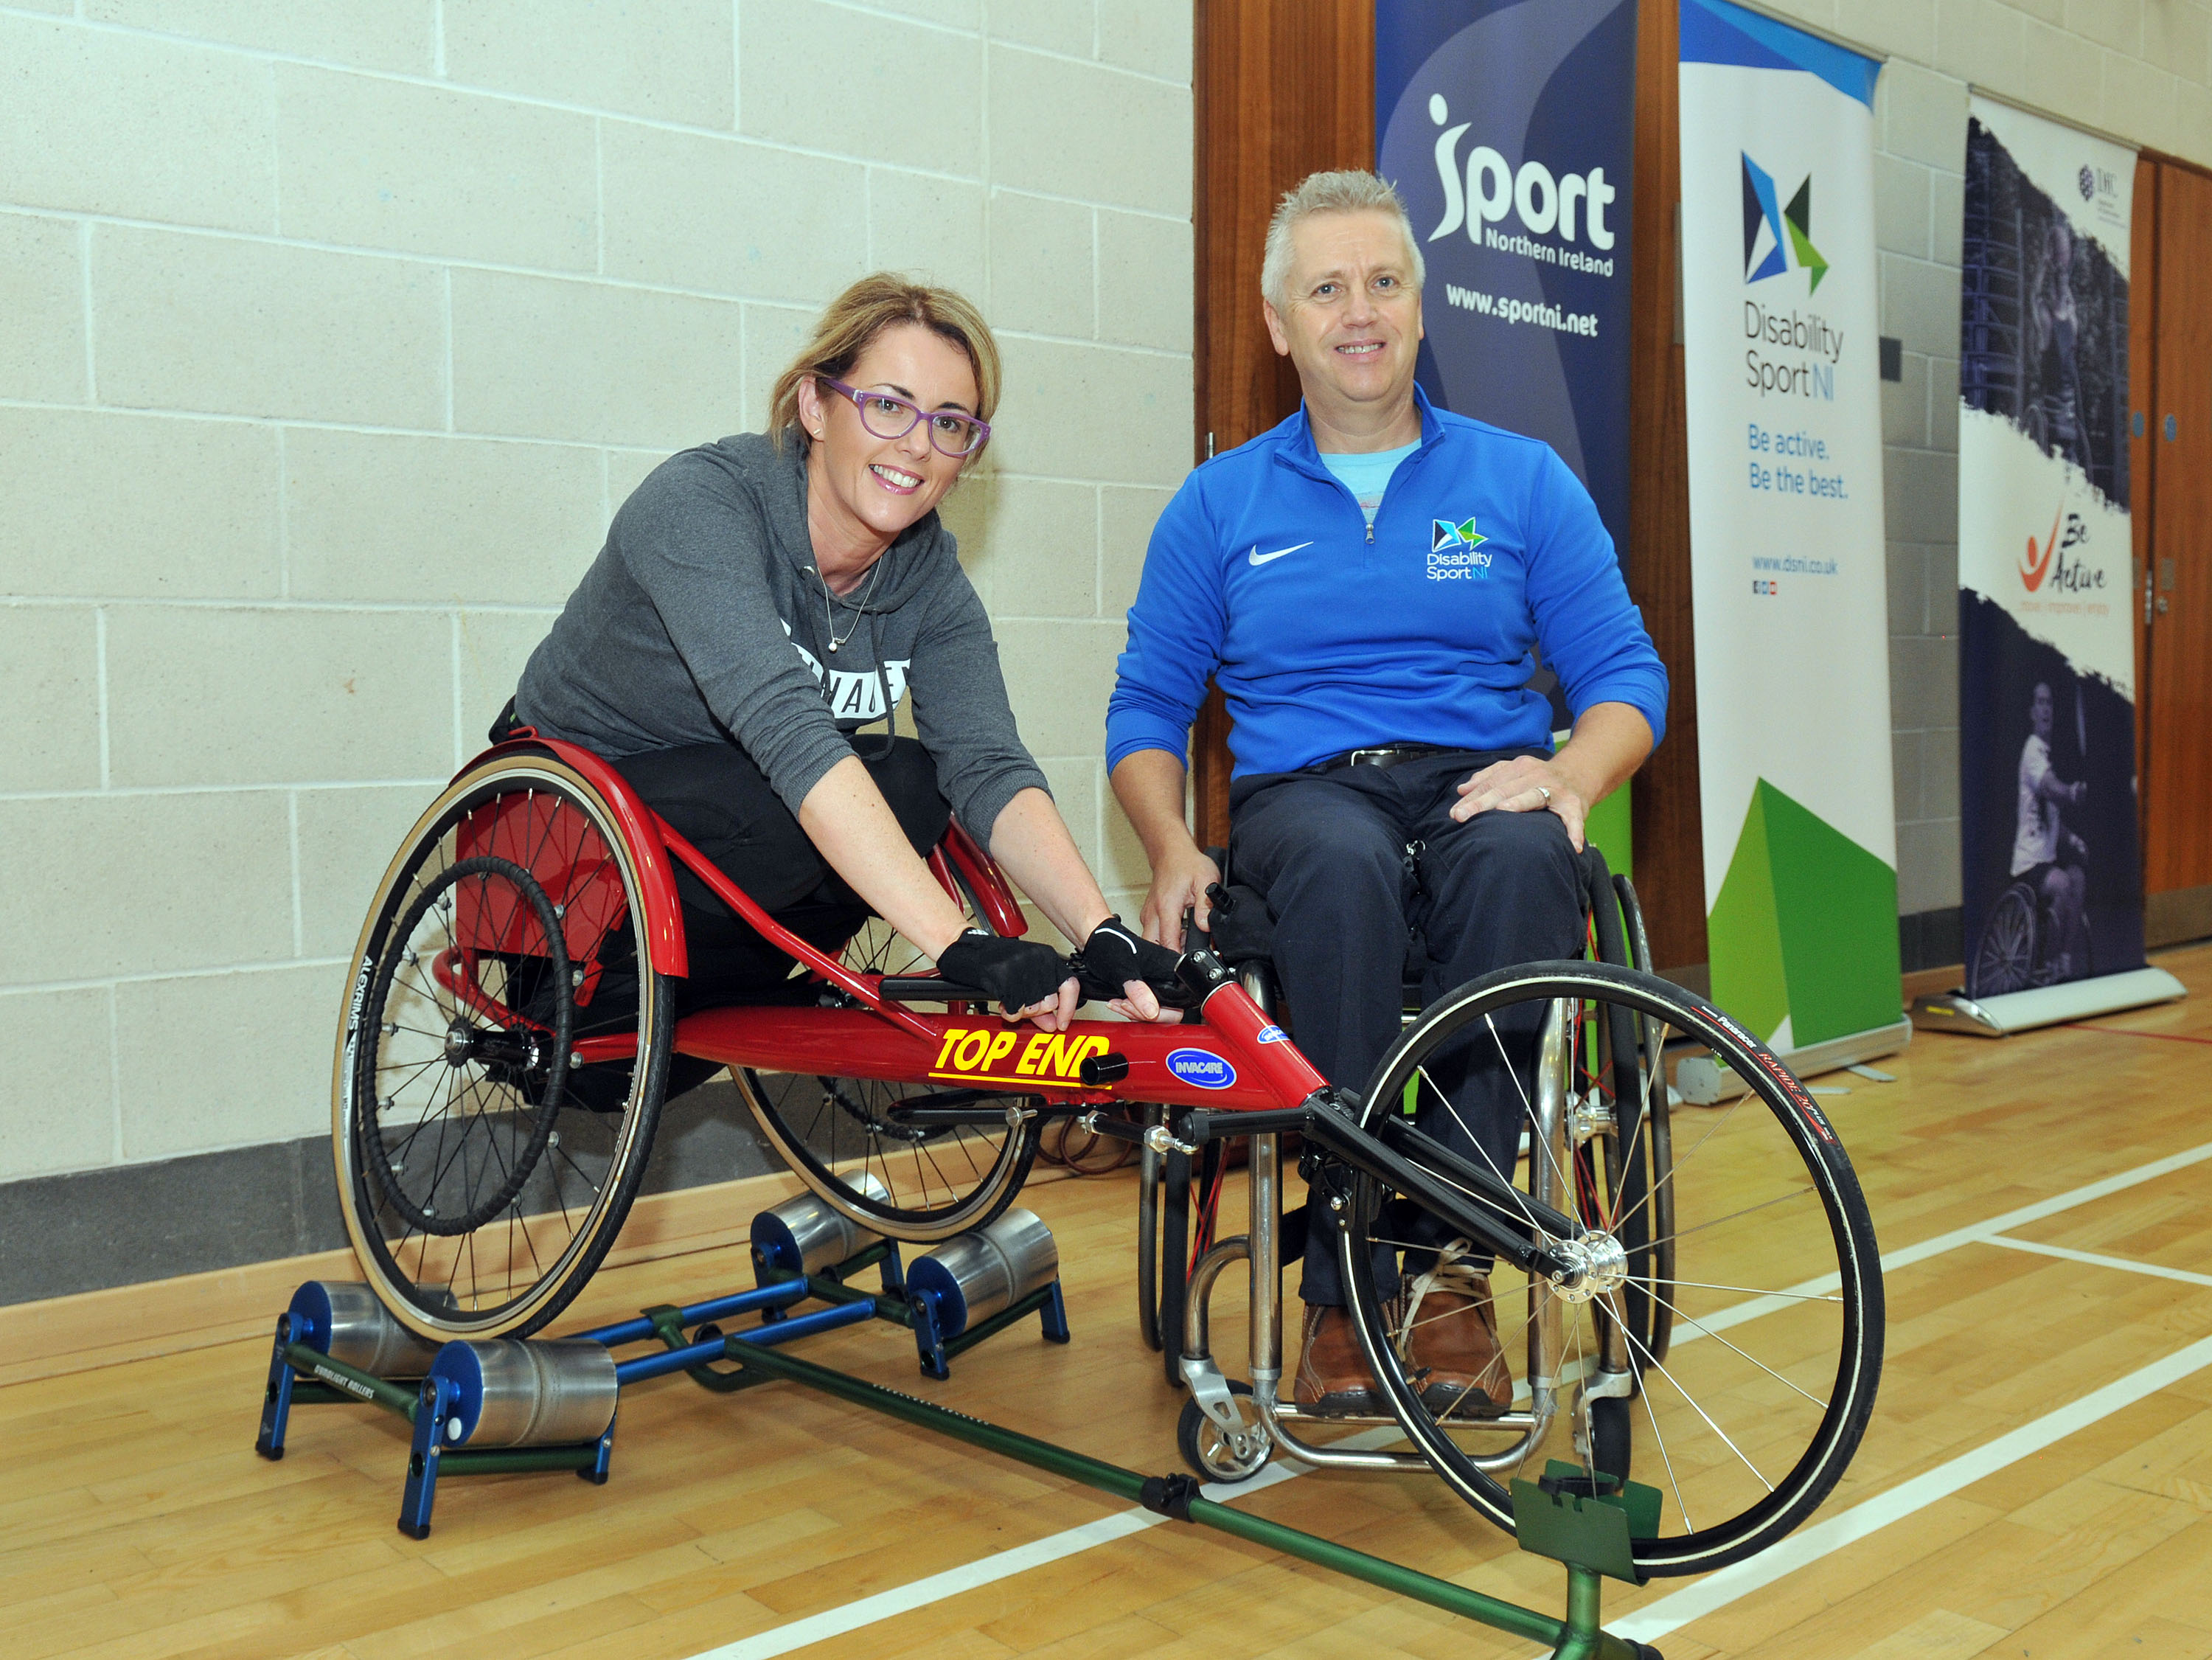 5.	Julie Wilson testing her speed on the track chair with advice from Aubrey Bingham, Disability Sport NI